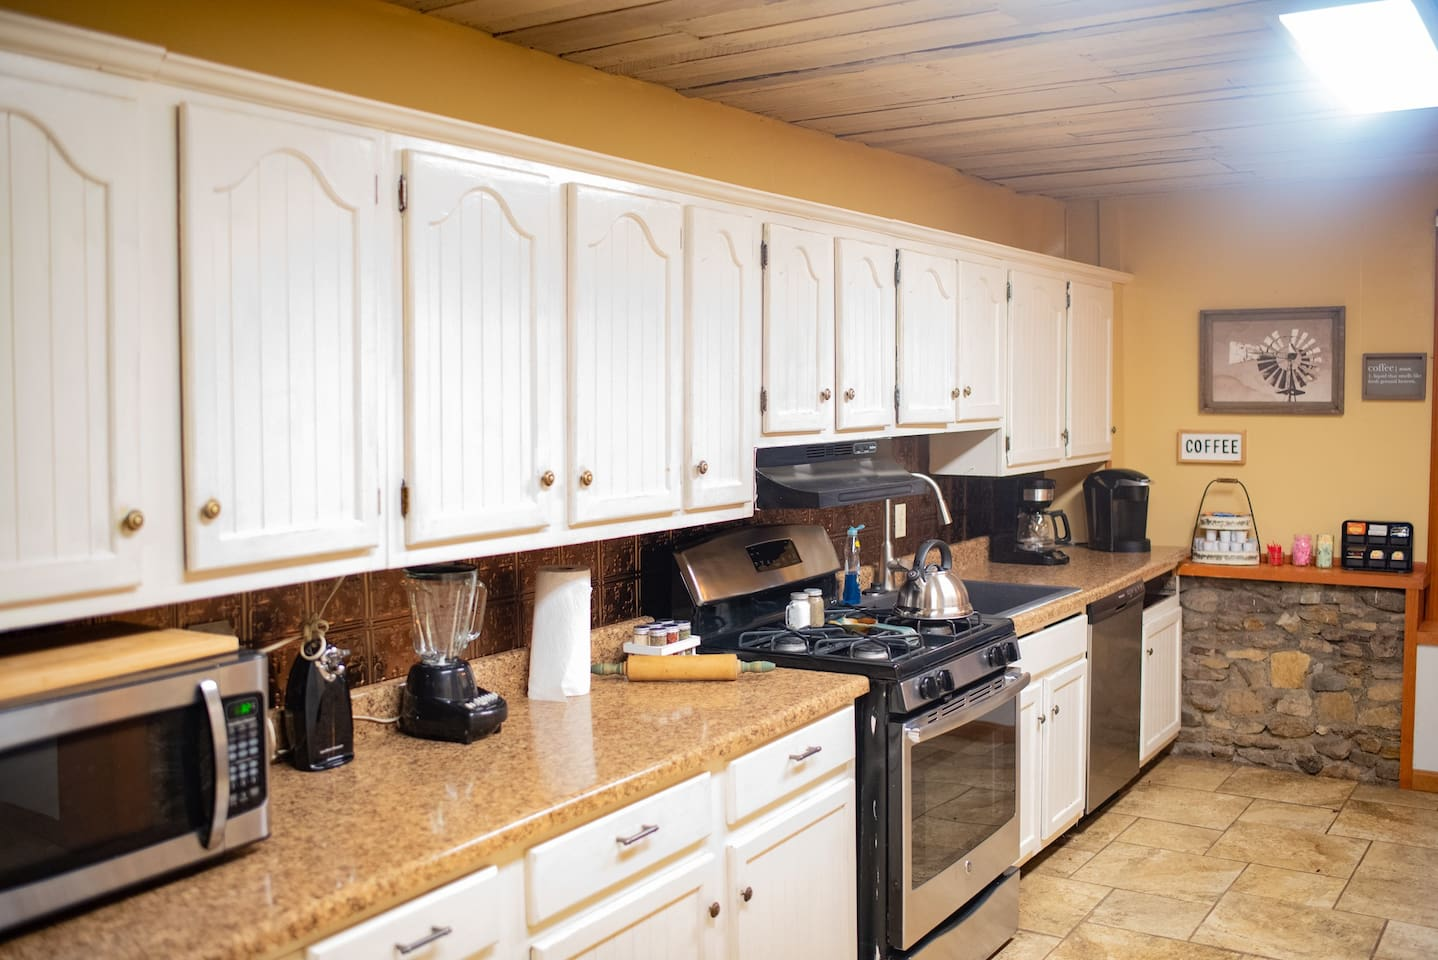 Kitchen - complete with tile warmers. Plenty of room to cook for a large family gathering. Grill is provided as well.